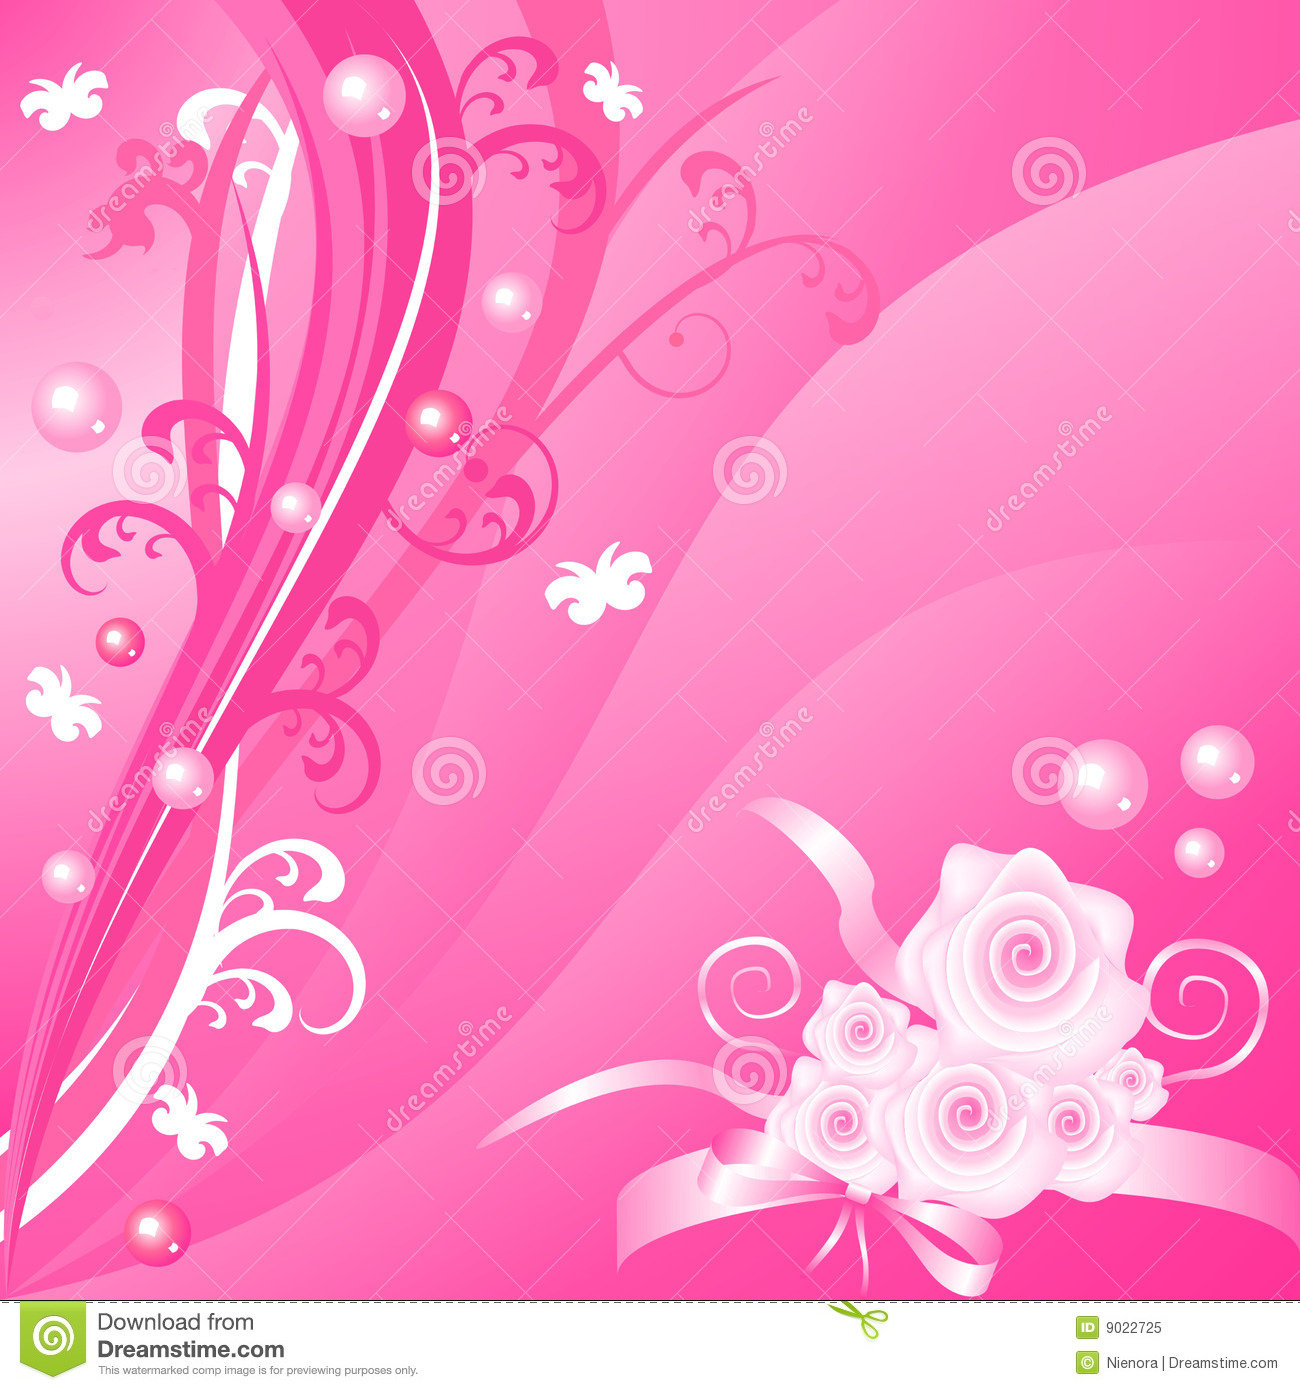 Romantic Pink Floral Vector Background With Roses Royalty